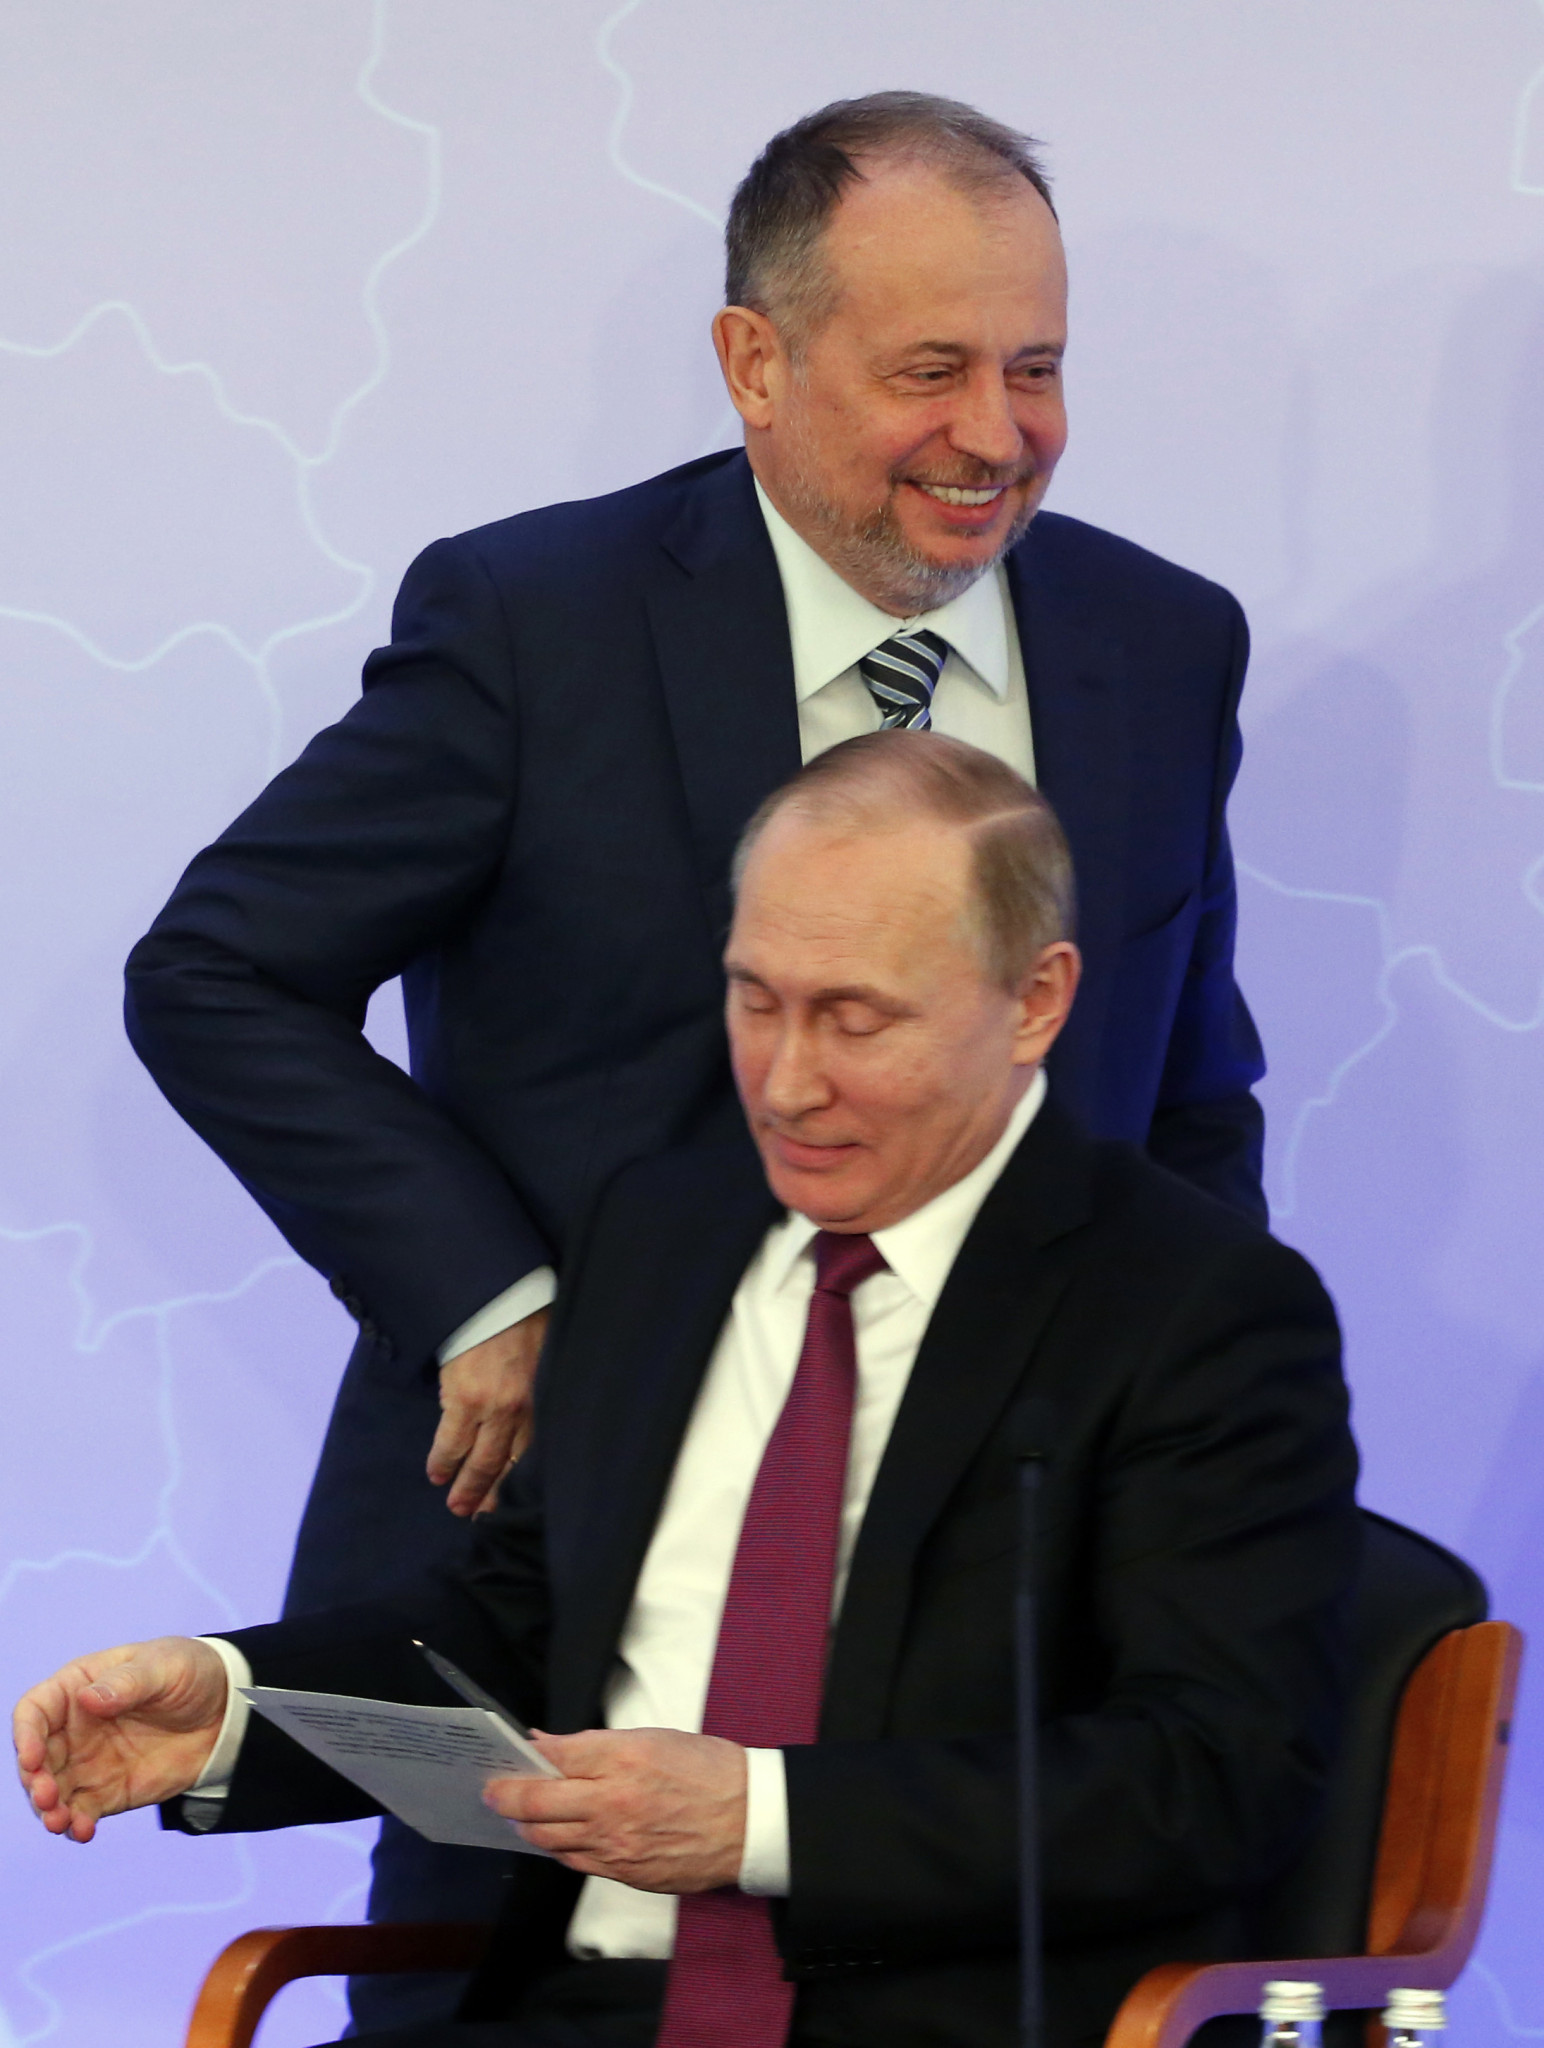 Luciano Rossi is running against Russia's Vladimir Lisin, pictured here with Vladimir Putin, for the right to succeed Olegario Vázquez Raña as ISSF President ©Getty Images